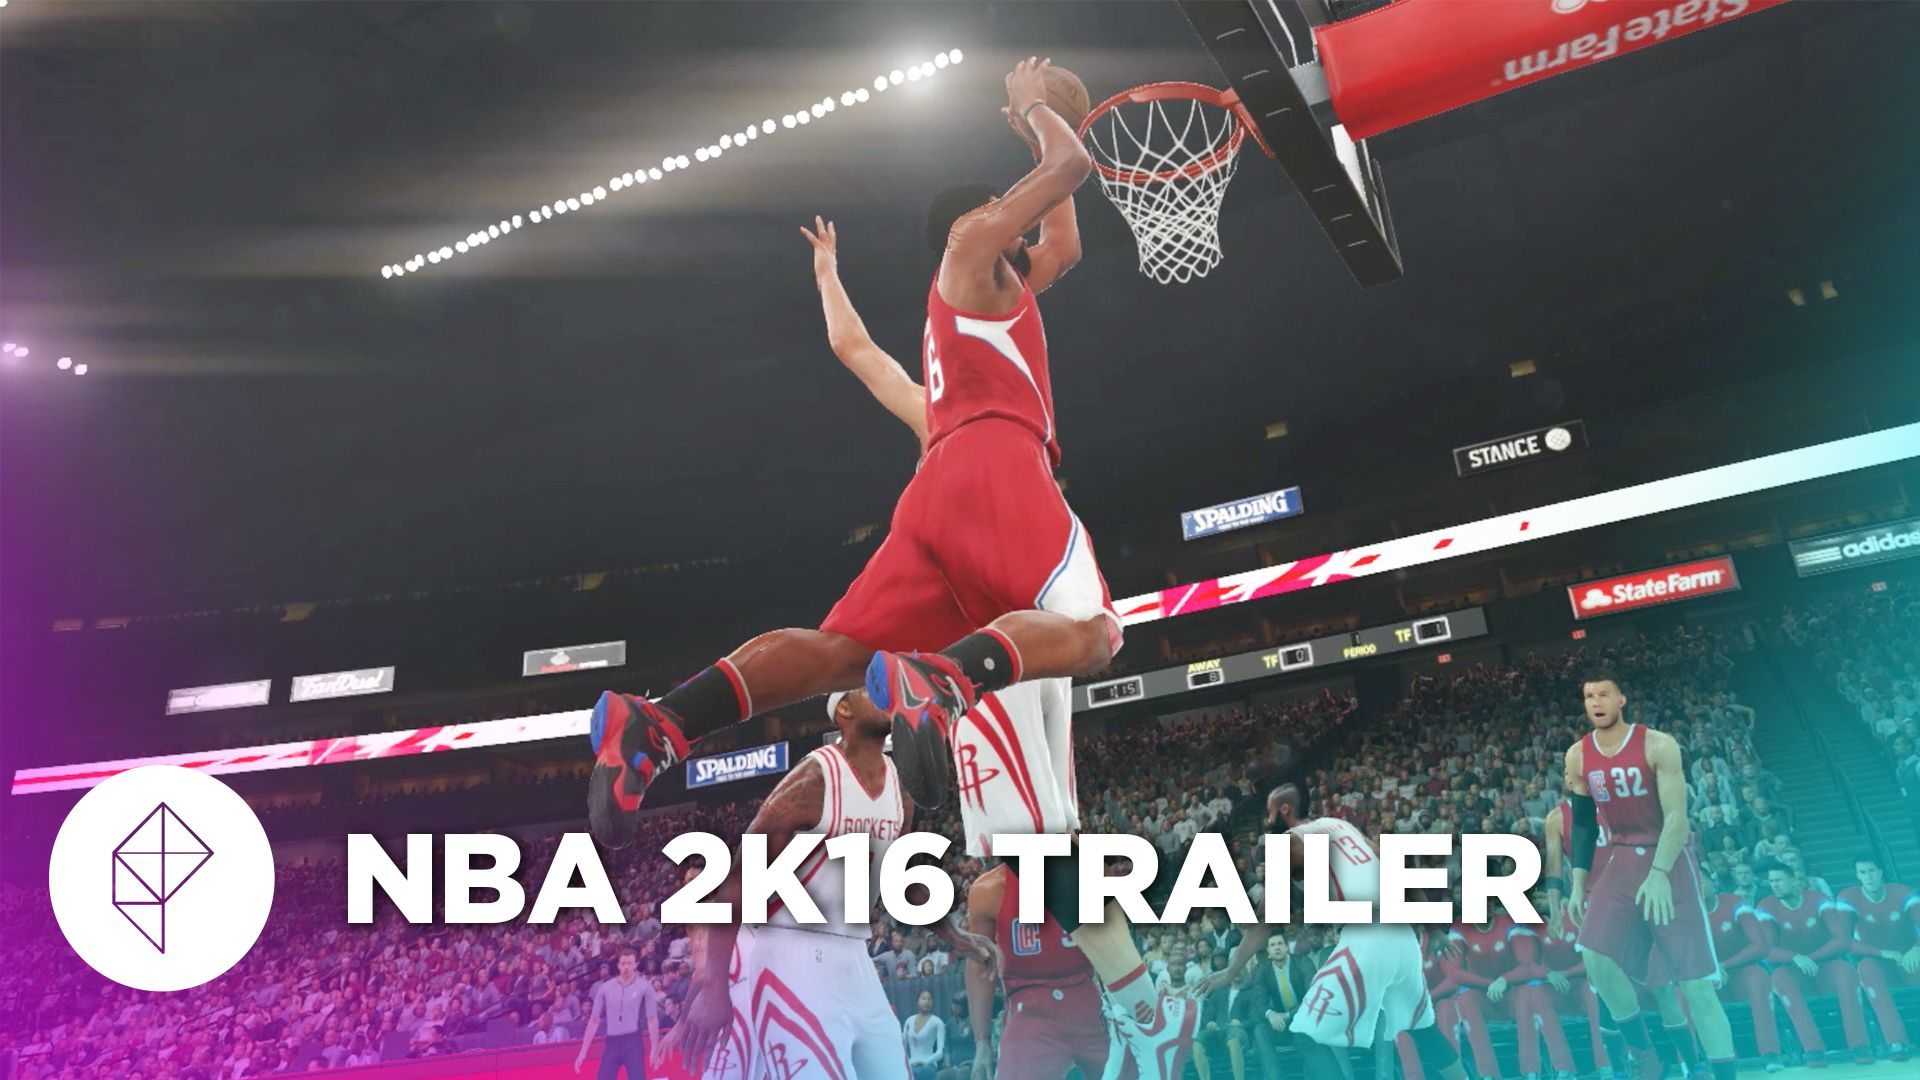 Take a good, long look at NBA 2K16 in its biggest trailer yet